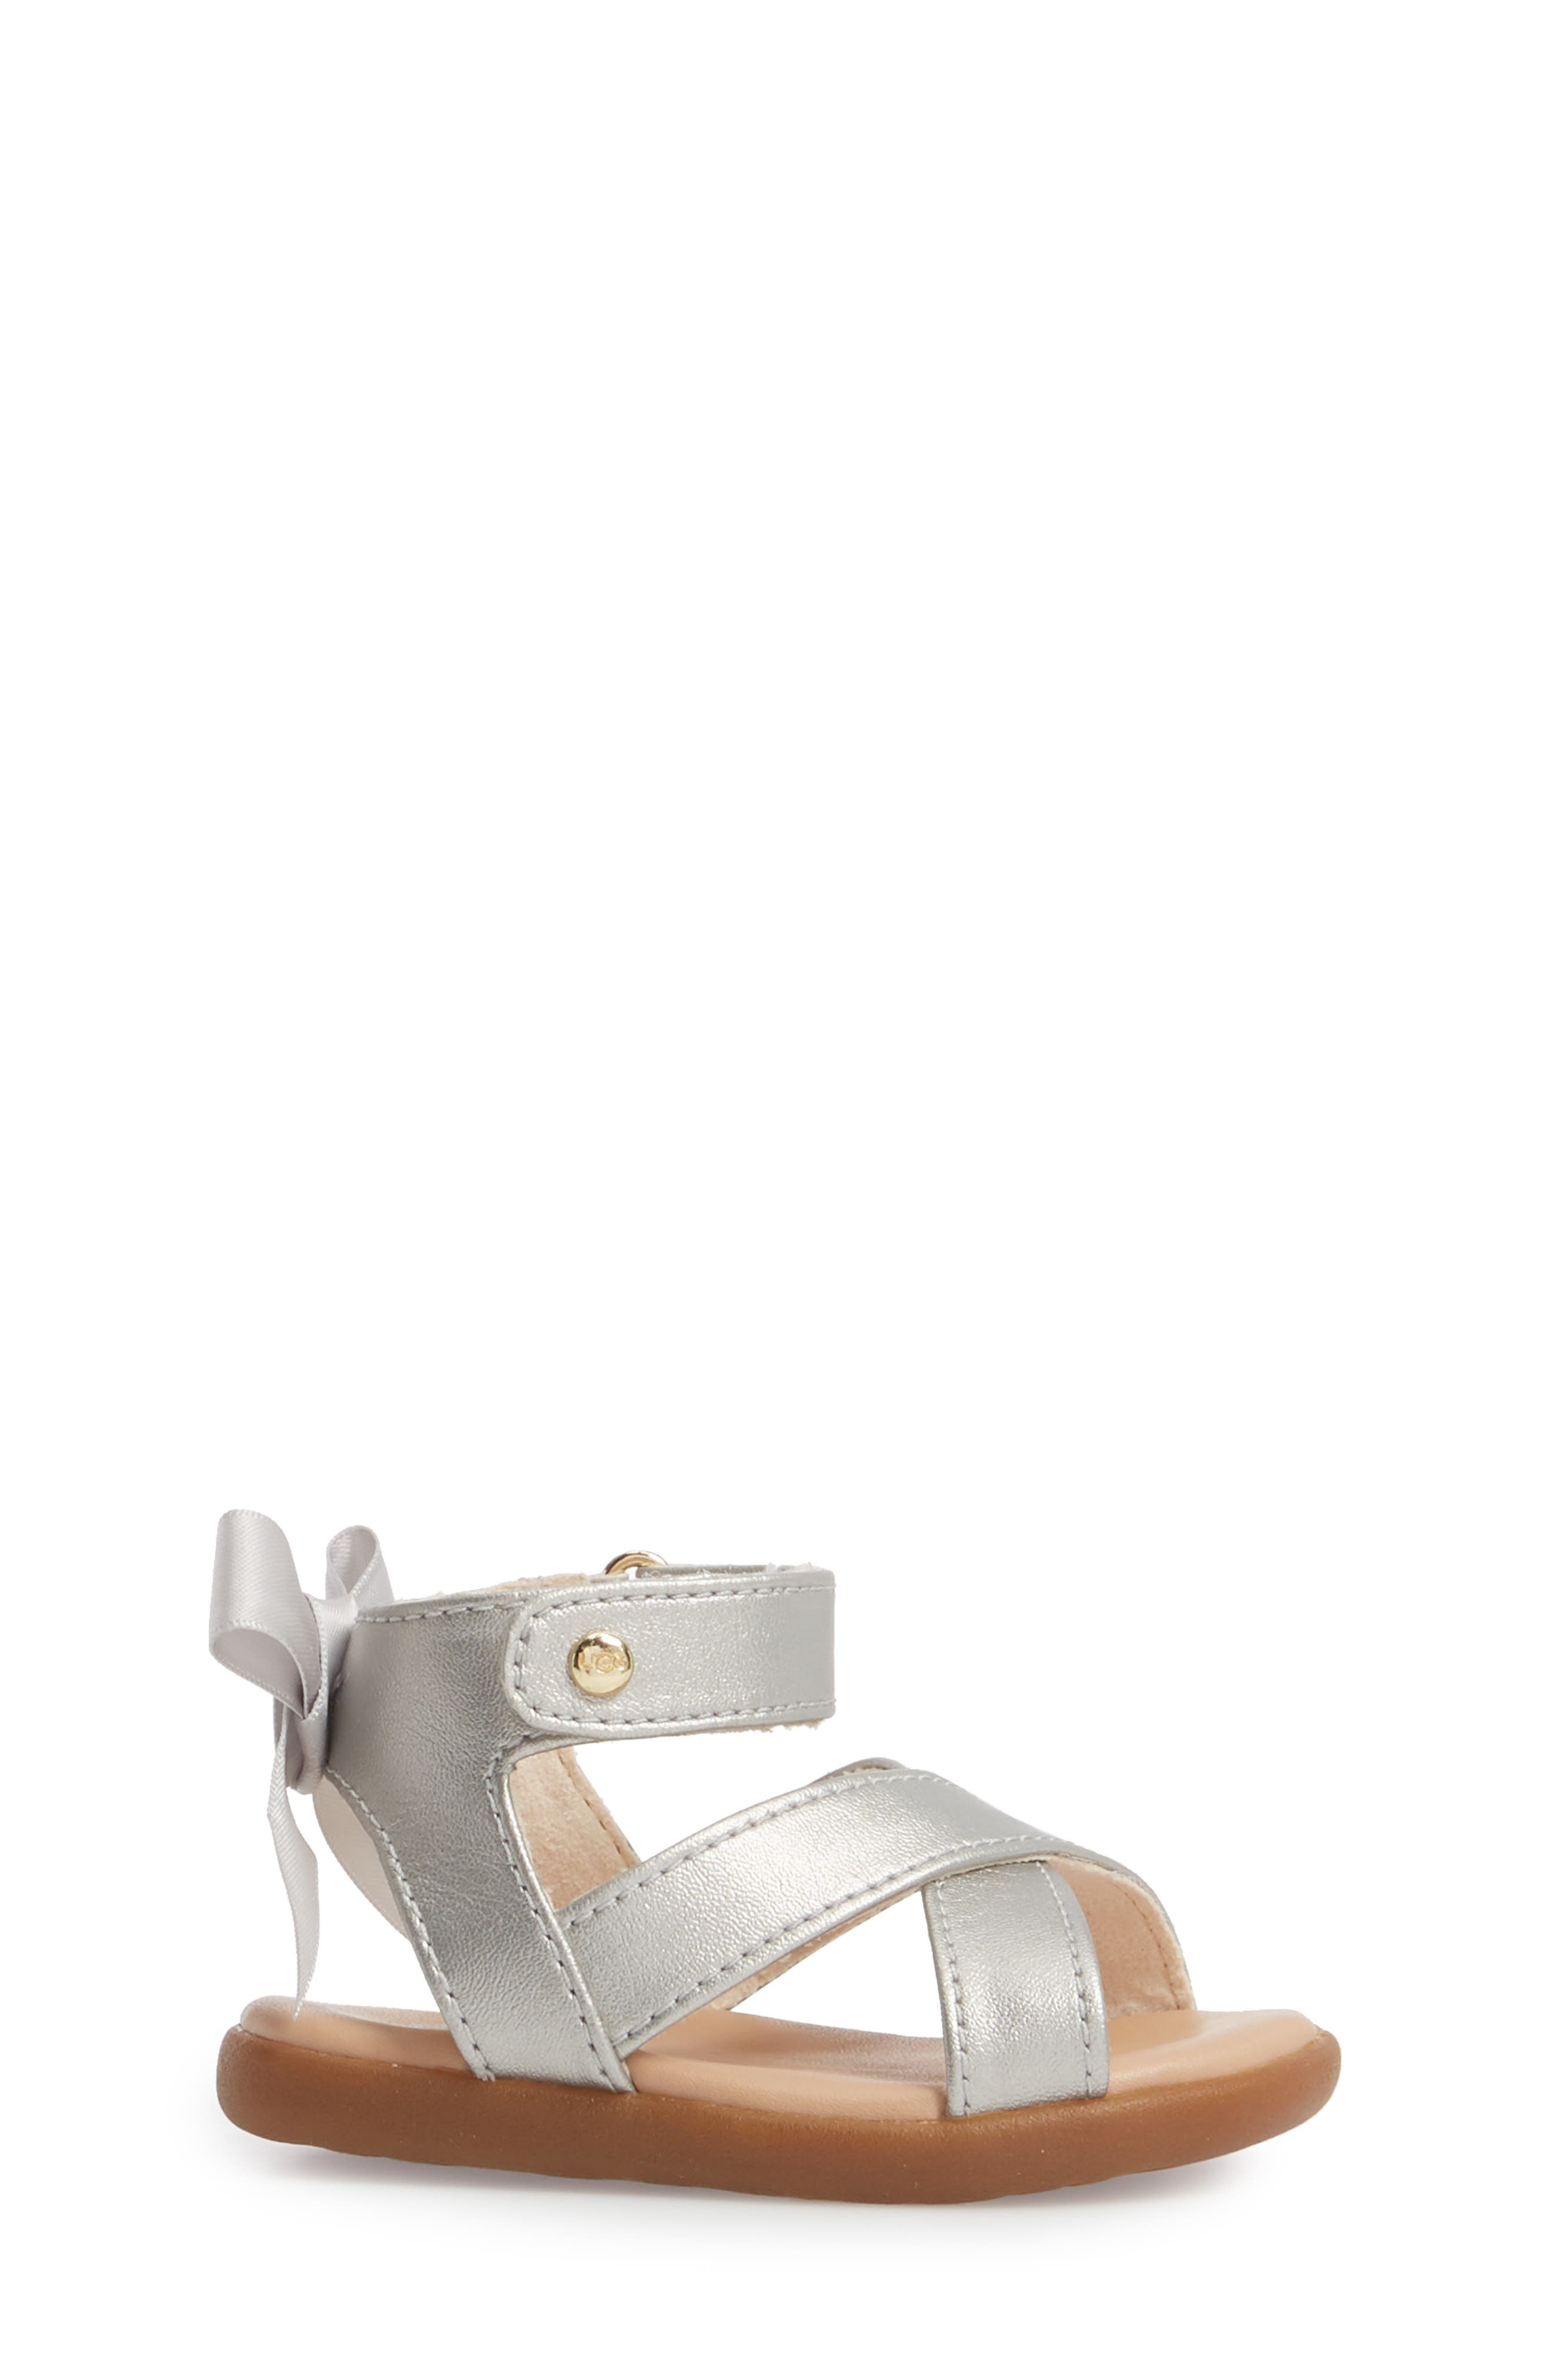 Maggiepie Sparkles Sandal,                             Alternate thumbnail 3, color,                             Silver